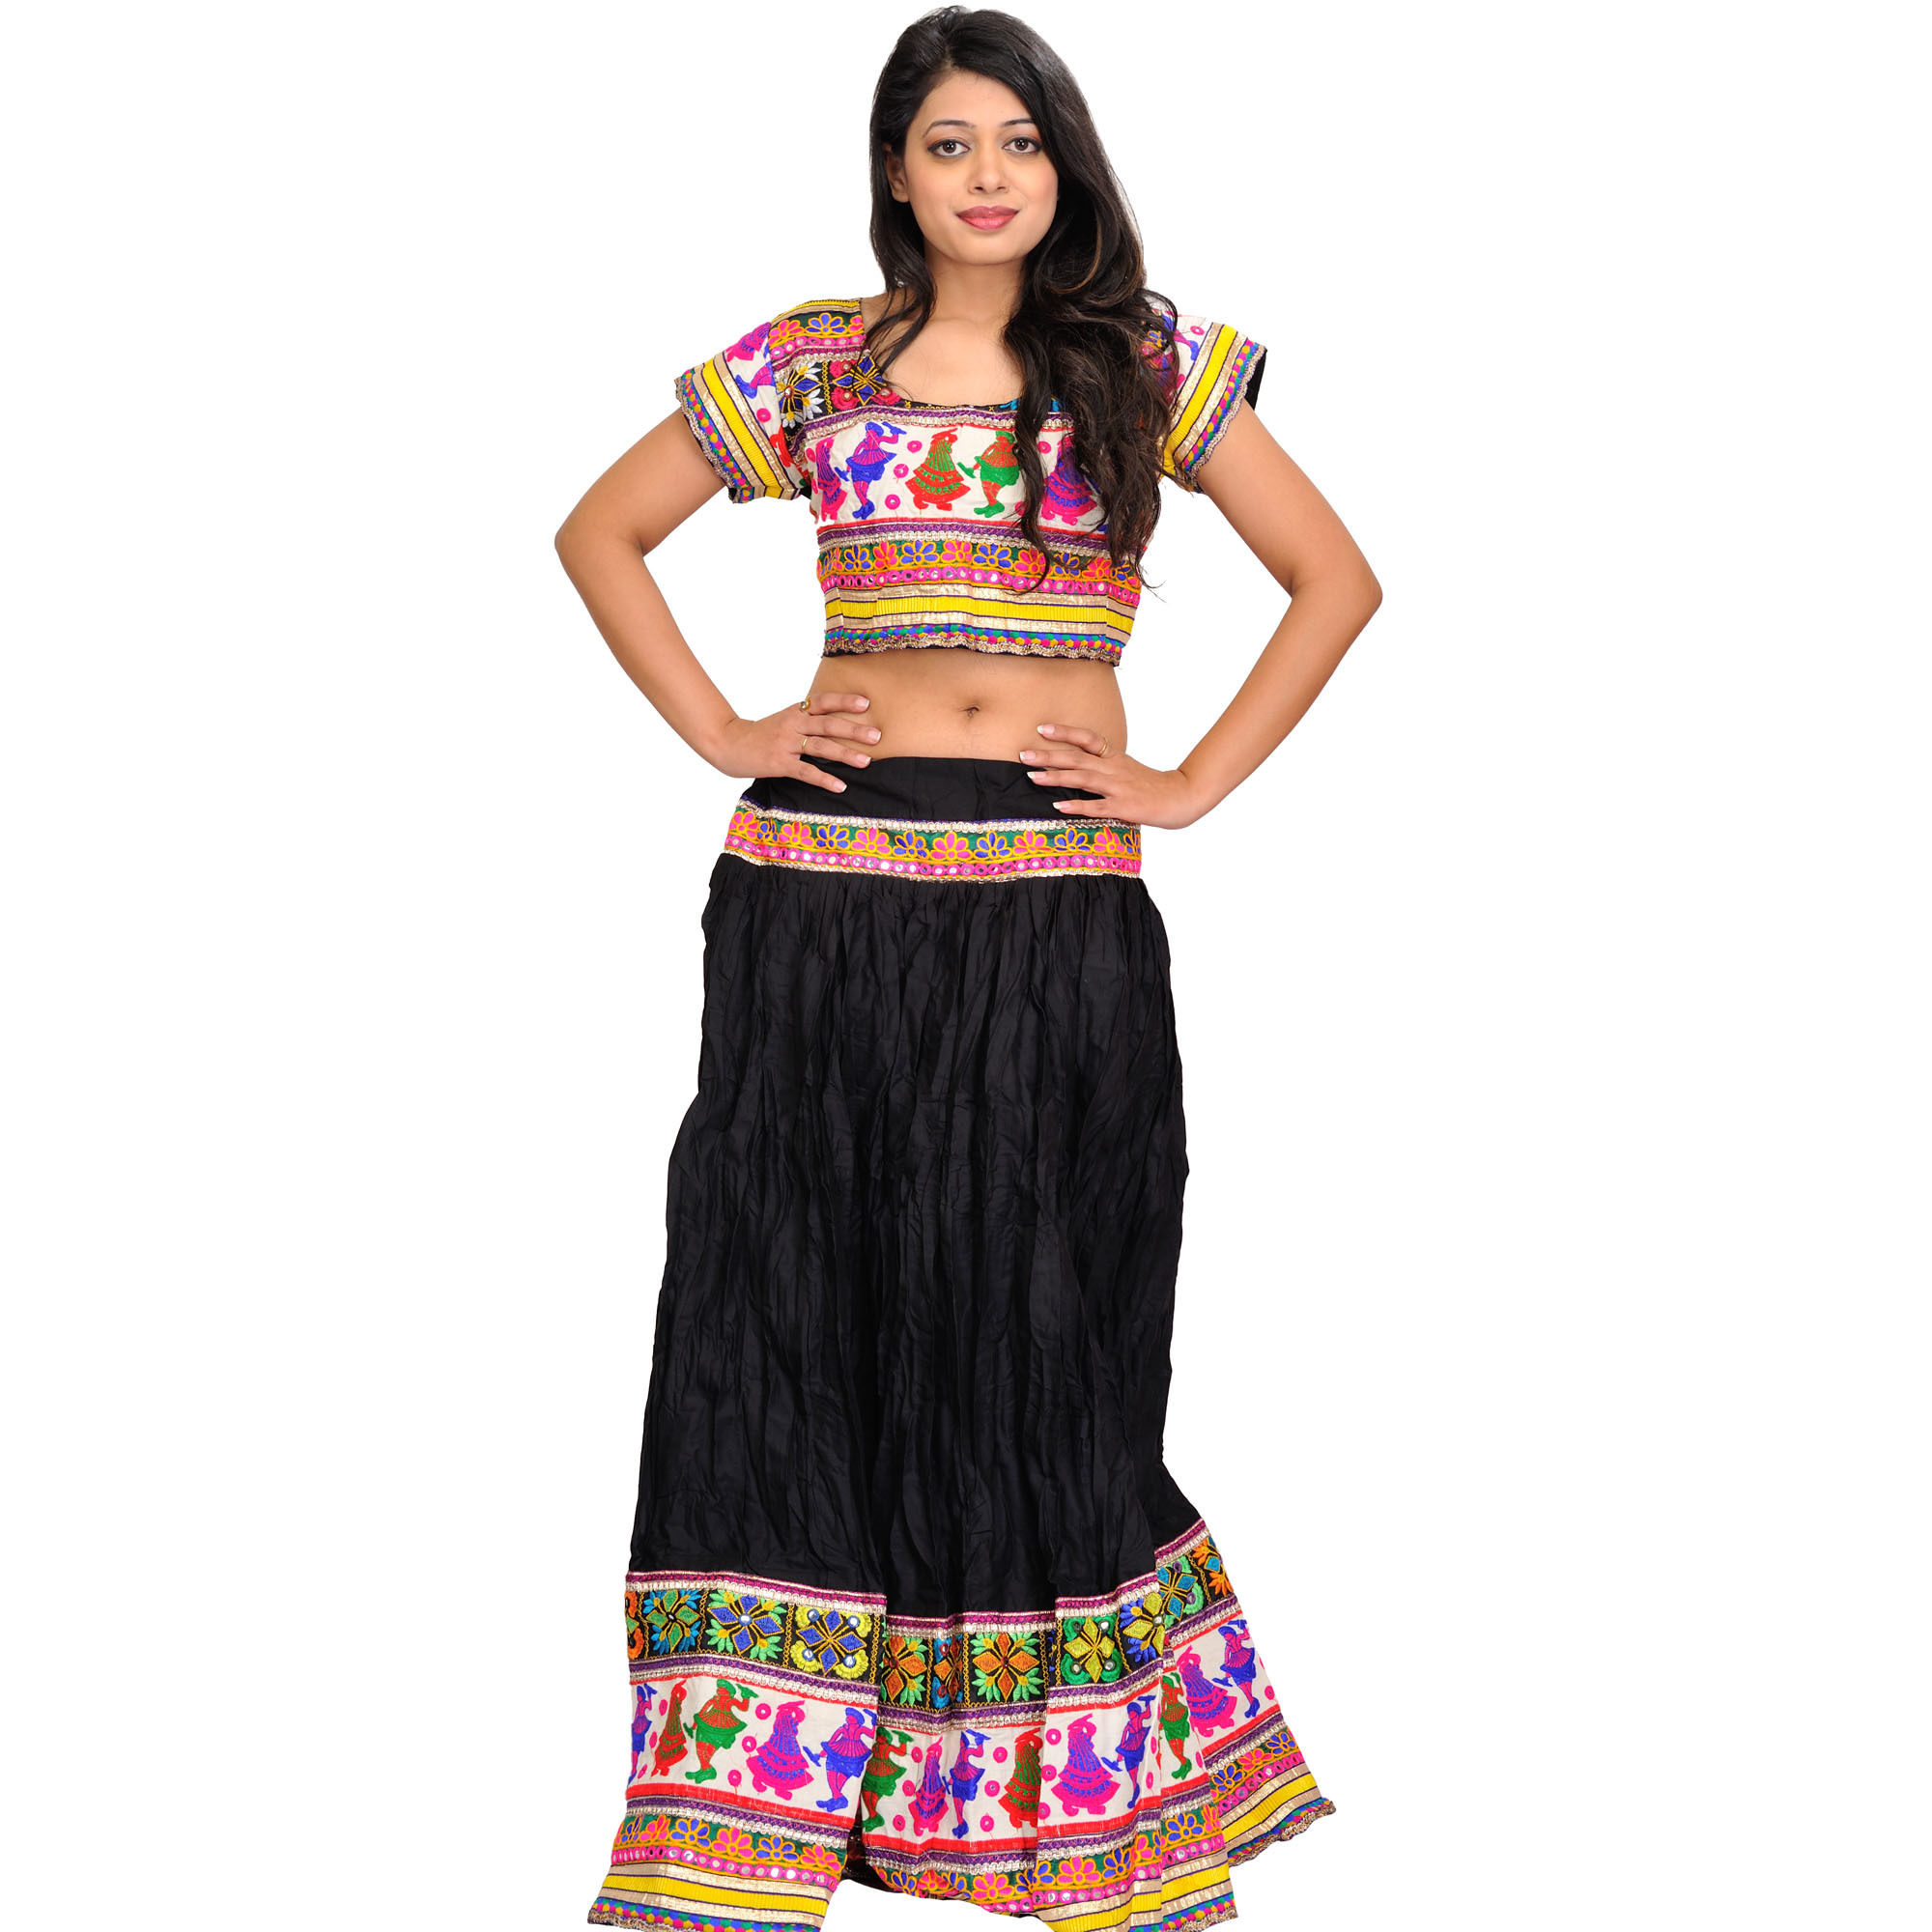 Jet-Black Two-Piece Embroidered Lehenga Choli with Dancing Couples on Border